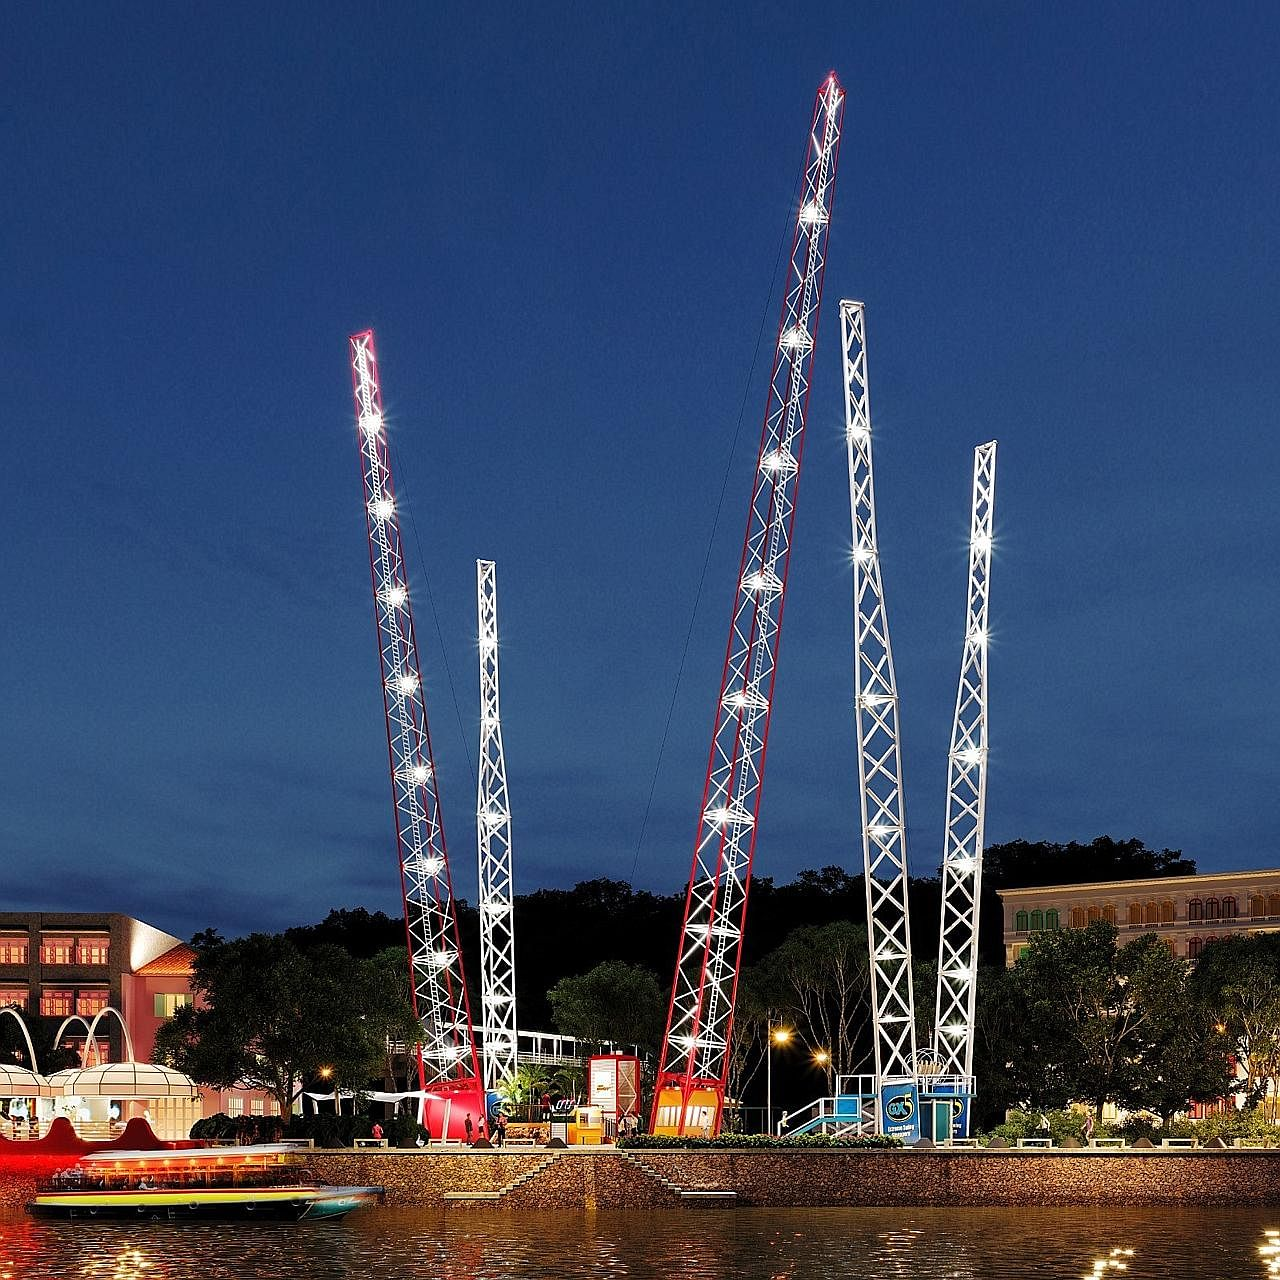 A 3D rendering of the Slingshot thrill ride at Clarke Quay that will catapult riders almost 70m into